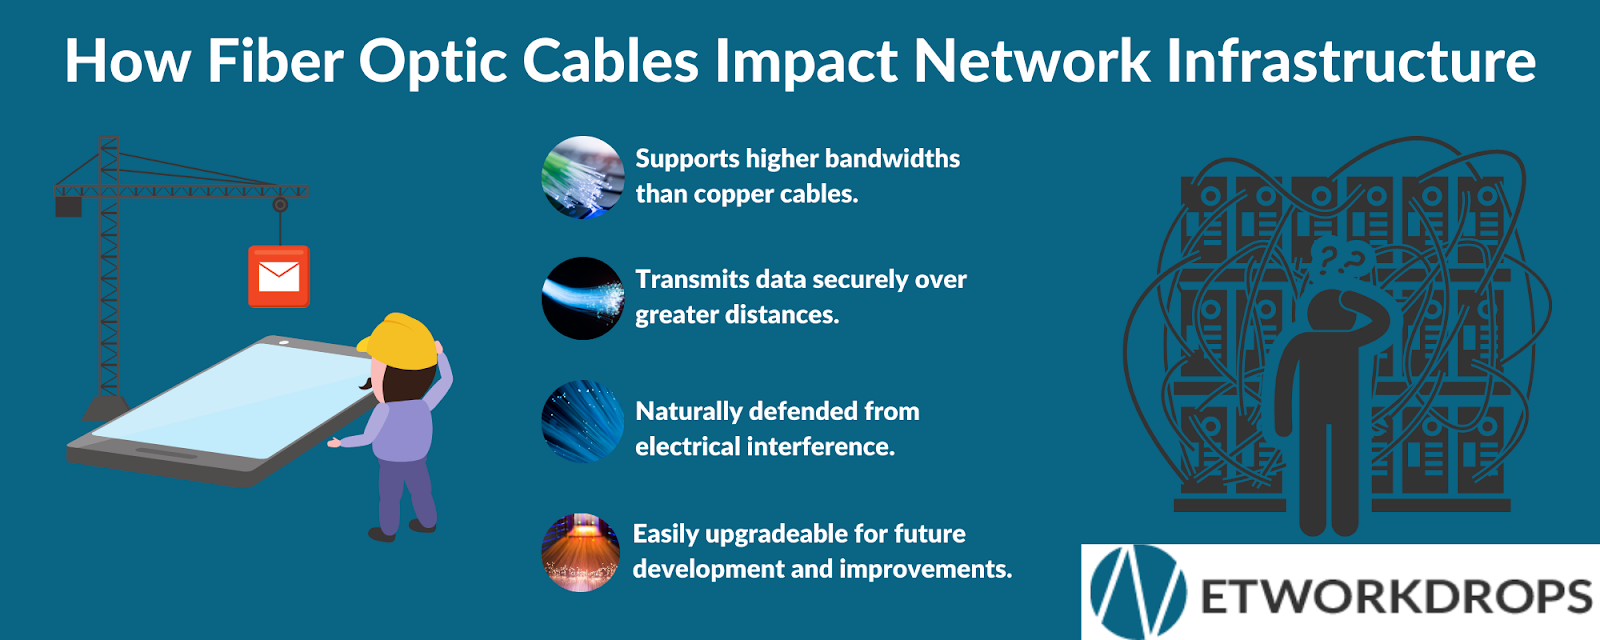 Infographic showing how fiber optic cables impact network infrastructure.